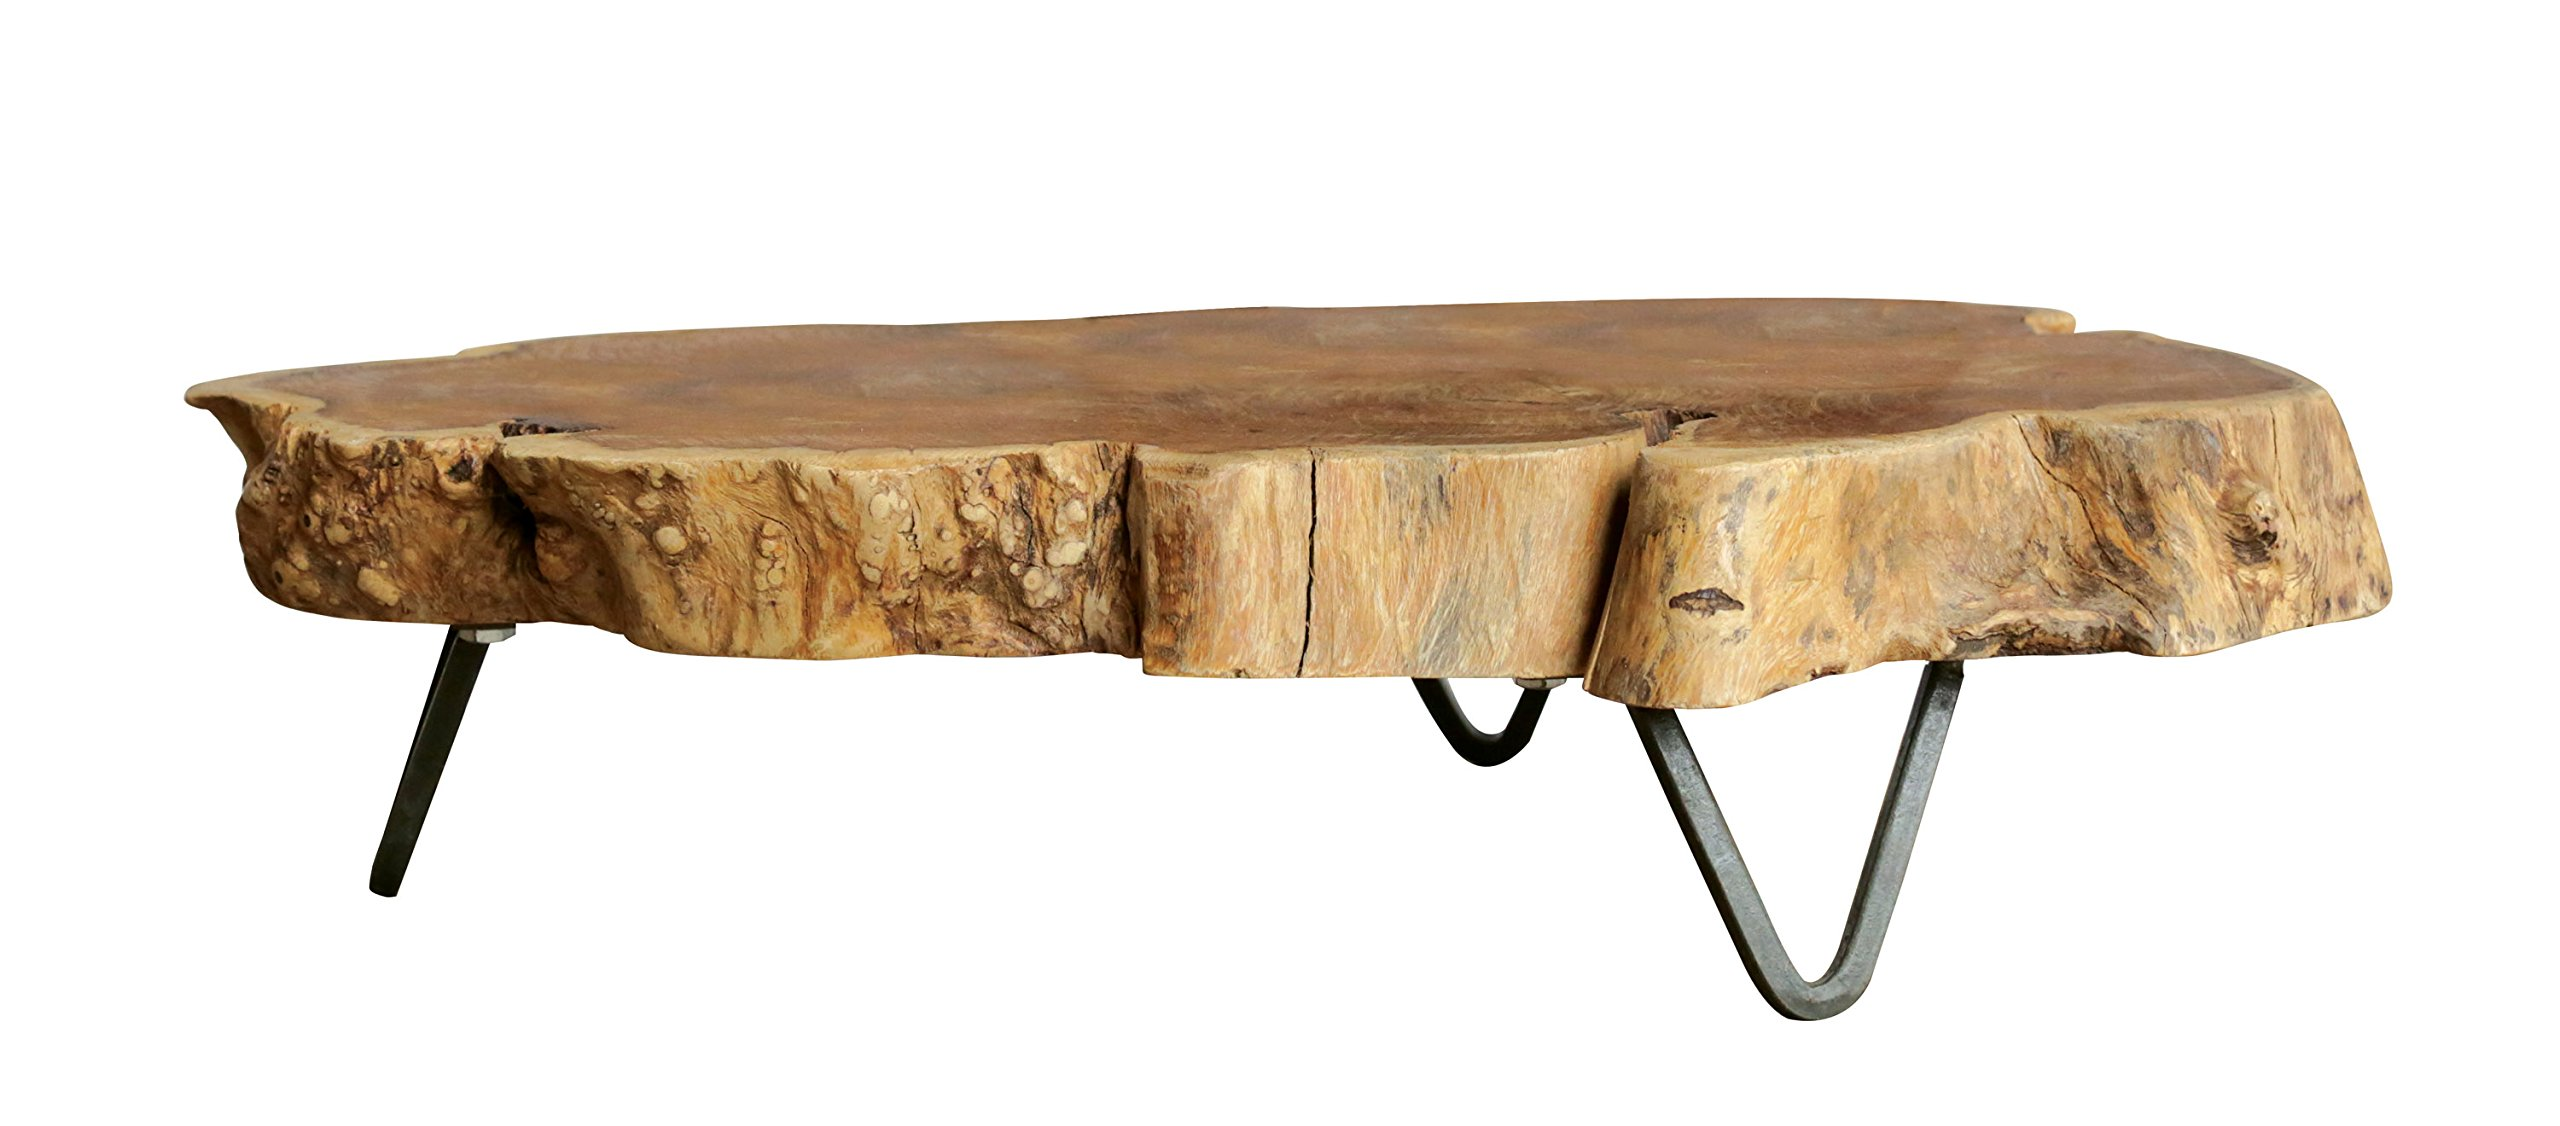 Creative Co-op DA4274 Raw Edged Wood Slab with Metal Feet by Creative Co-op (Image #1)